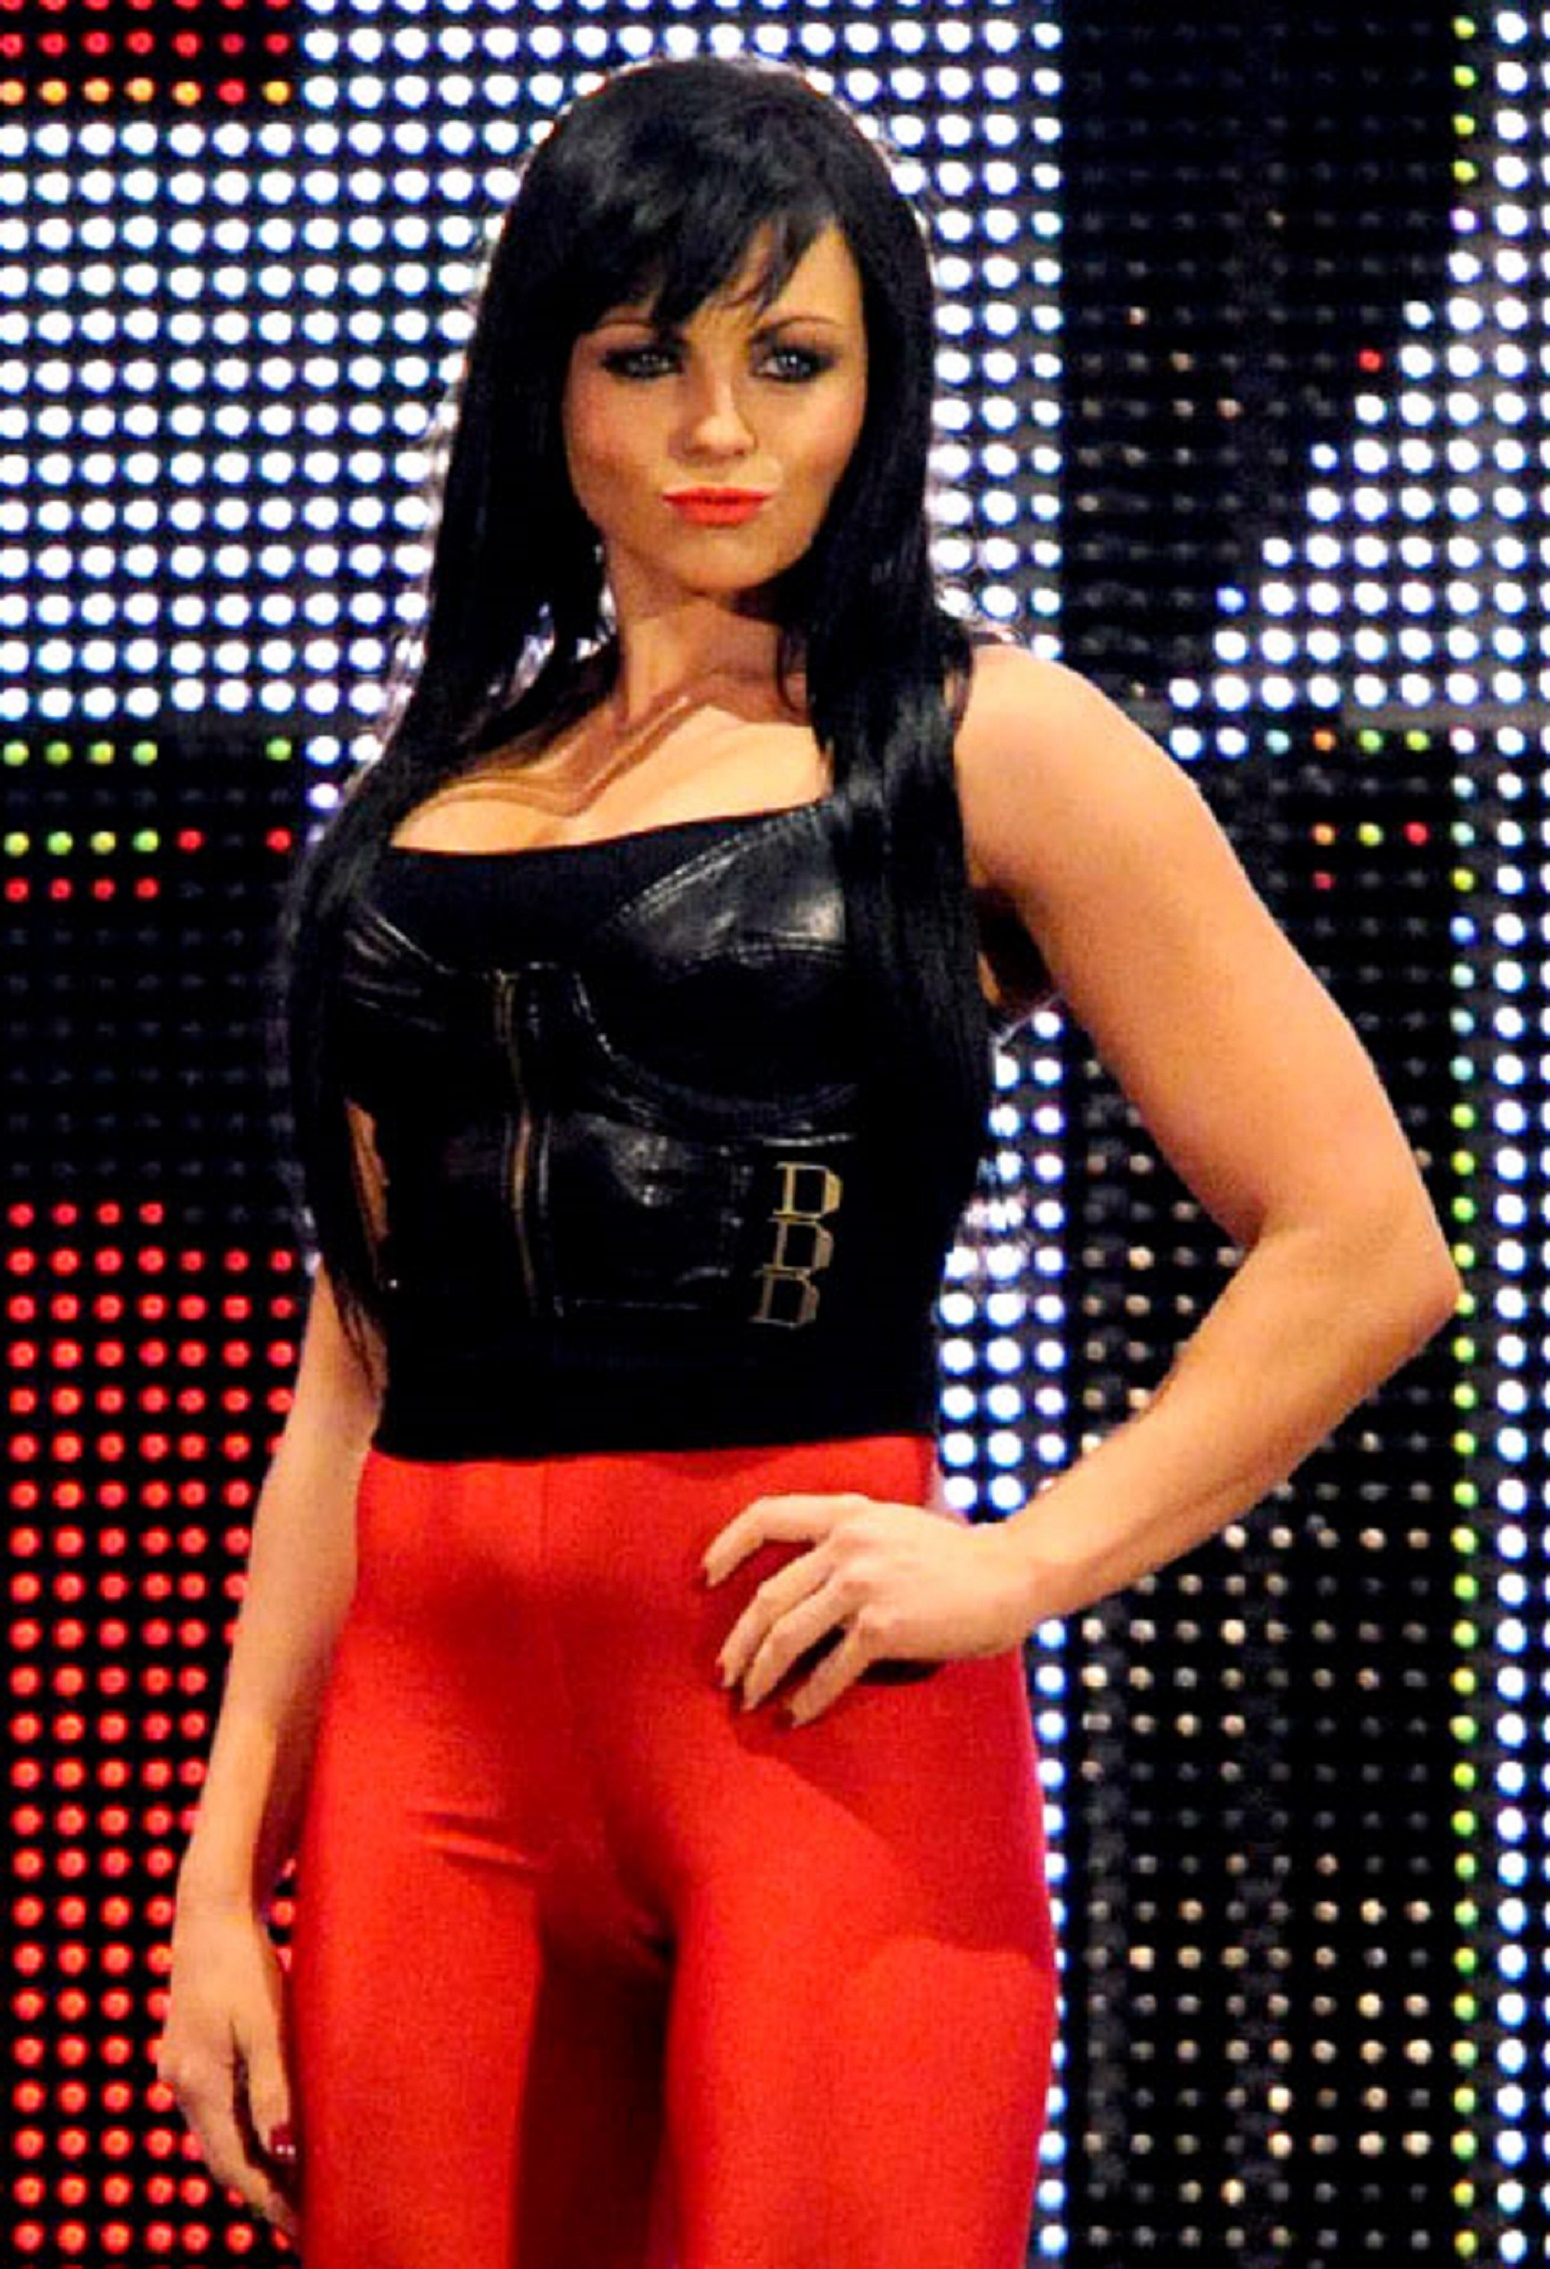 Aksana | Villains Wiki | FANDOM powered by Wikia